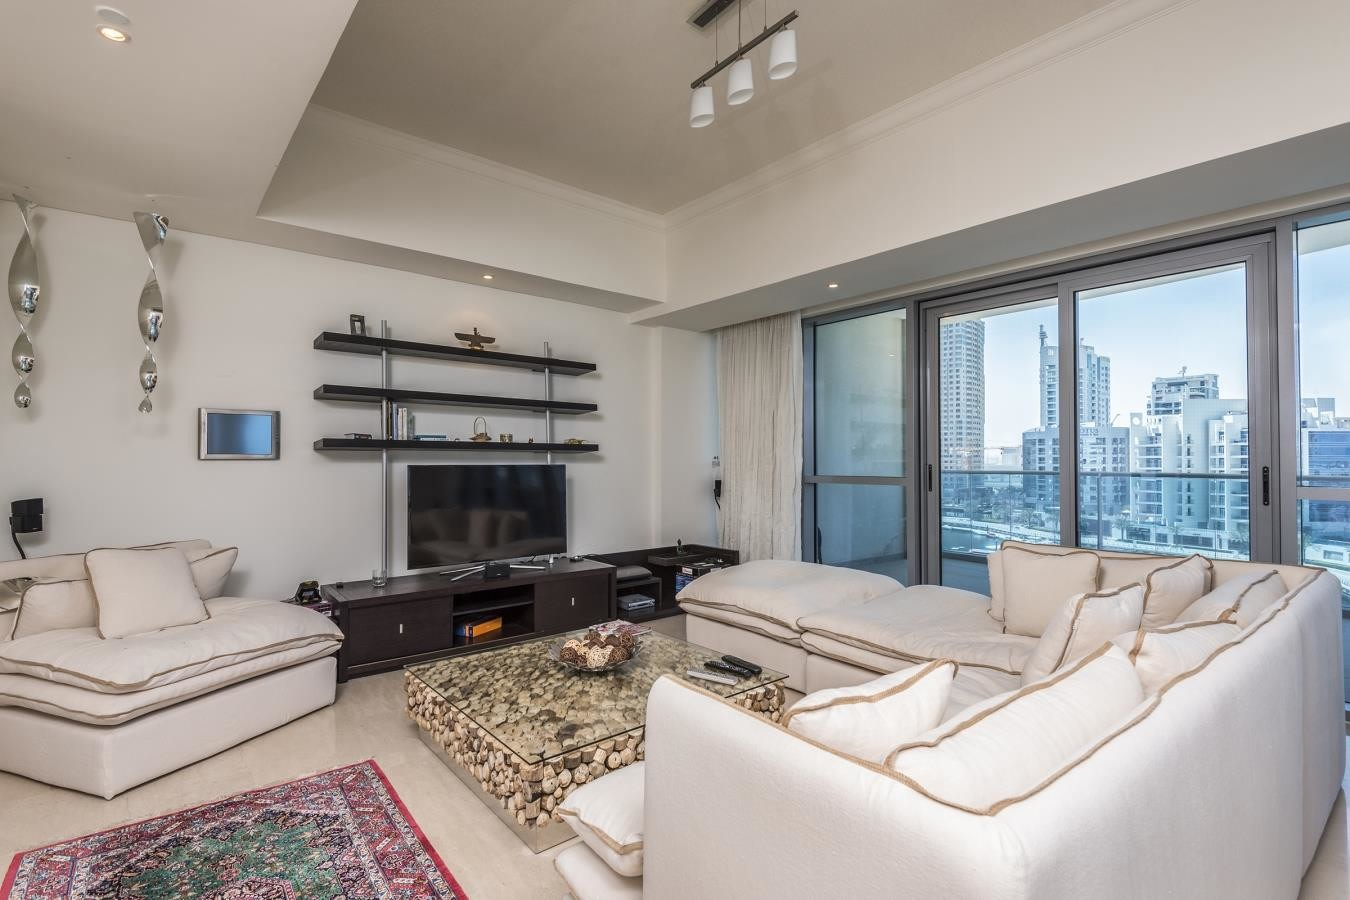 2 Bed + Maid with Full Marina View in Jewels 1